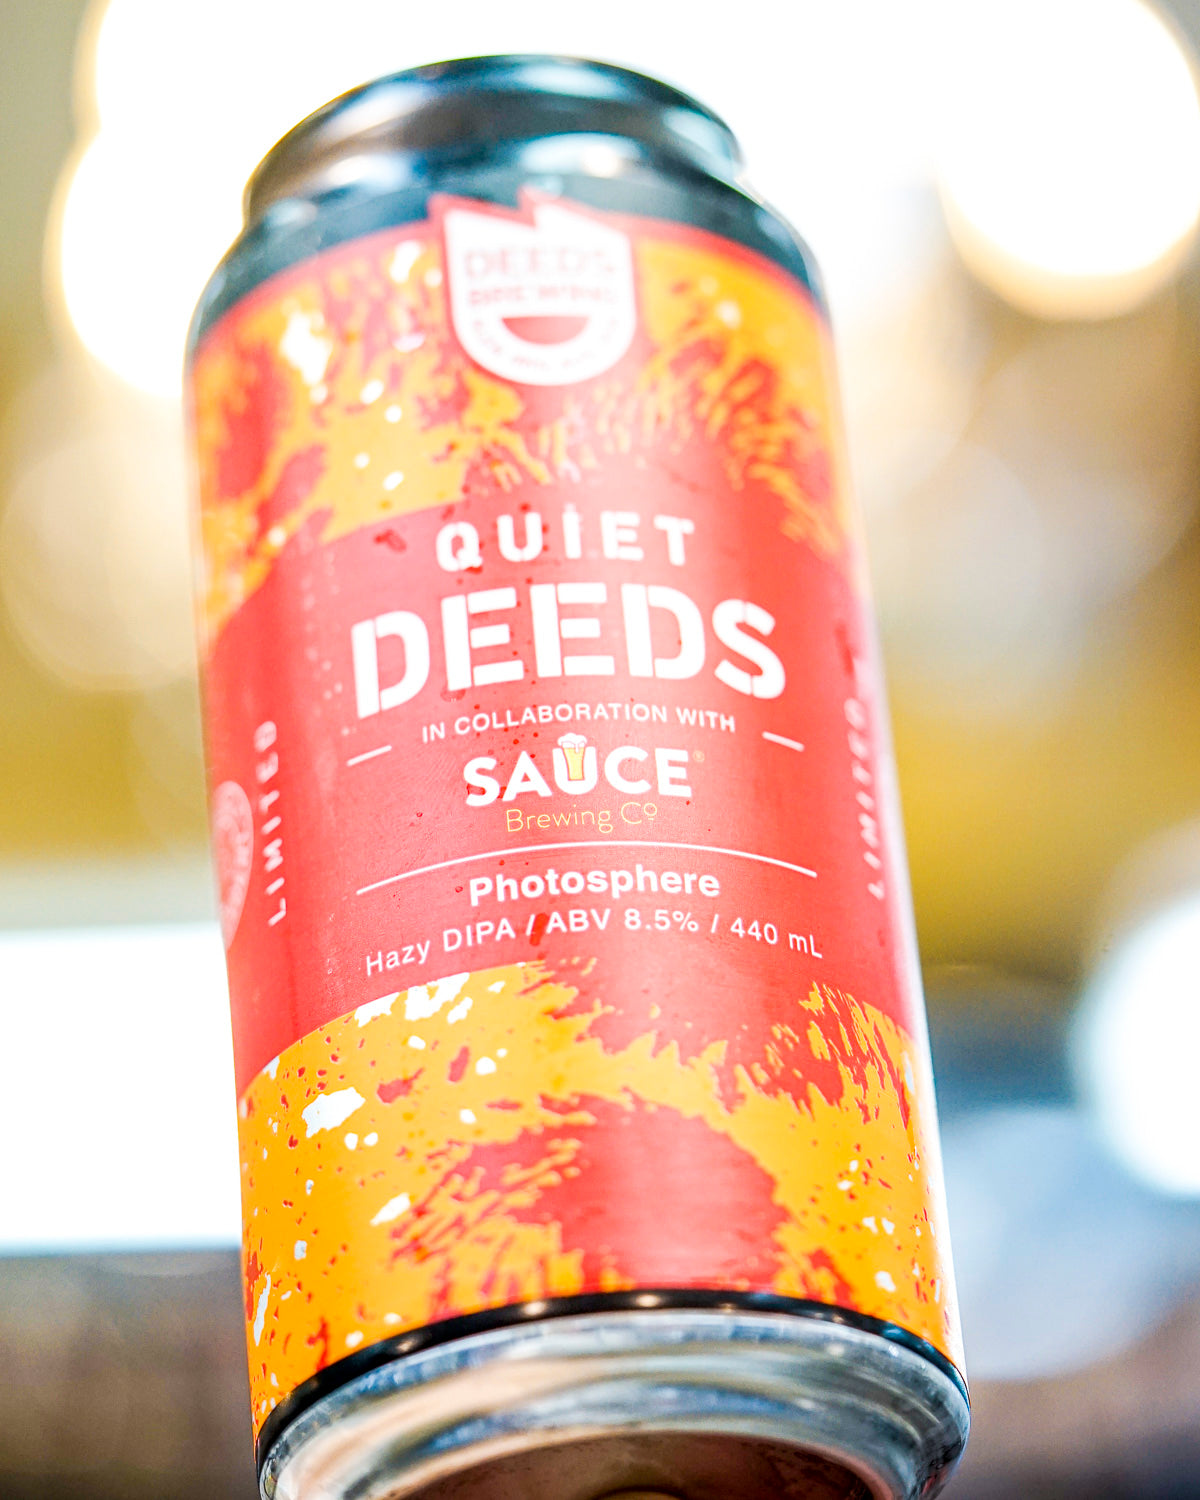 Quiet Deeds & Sauce Brewing 'Photosphere' Hazy DIPA 440mL